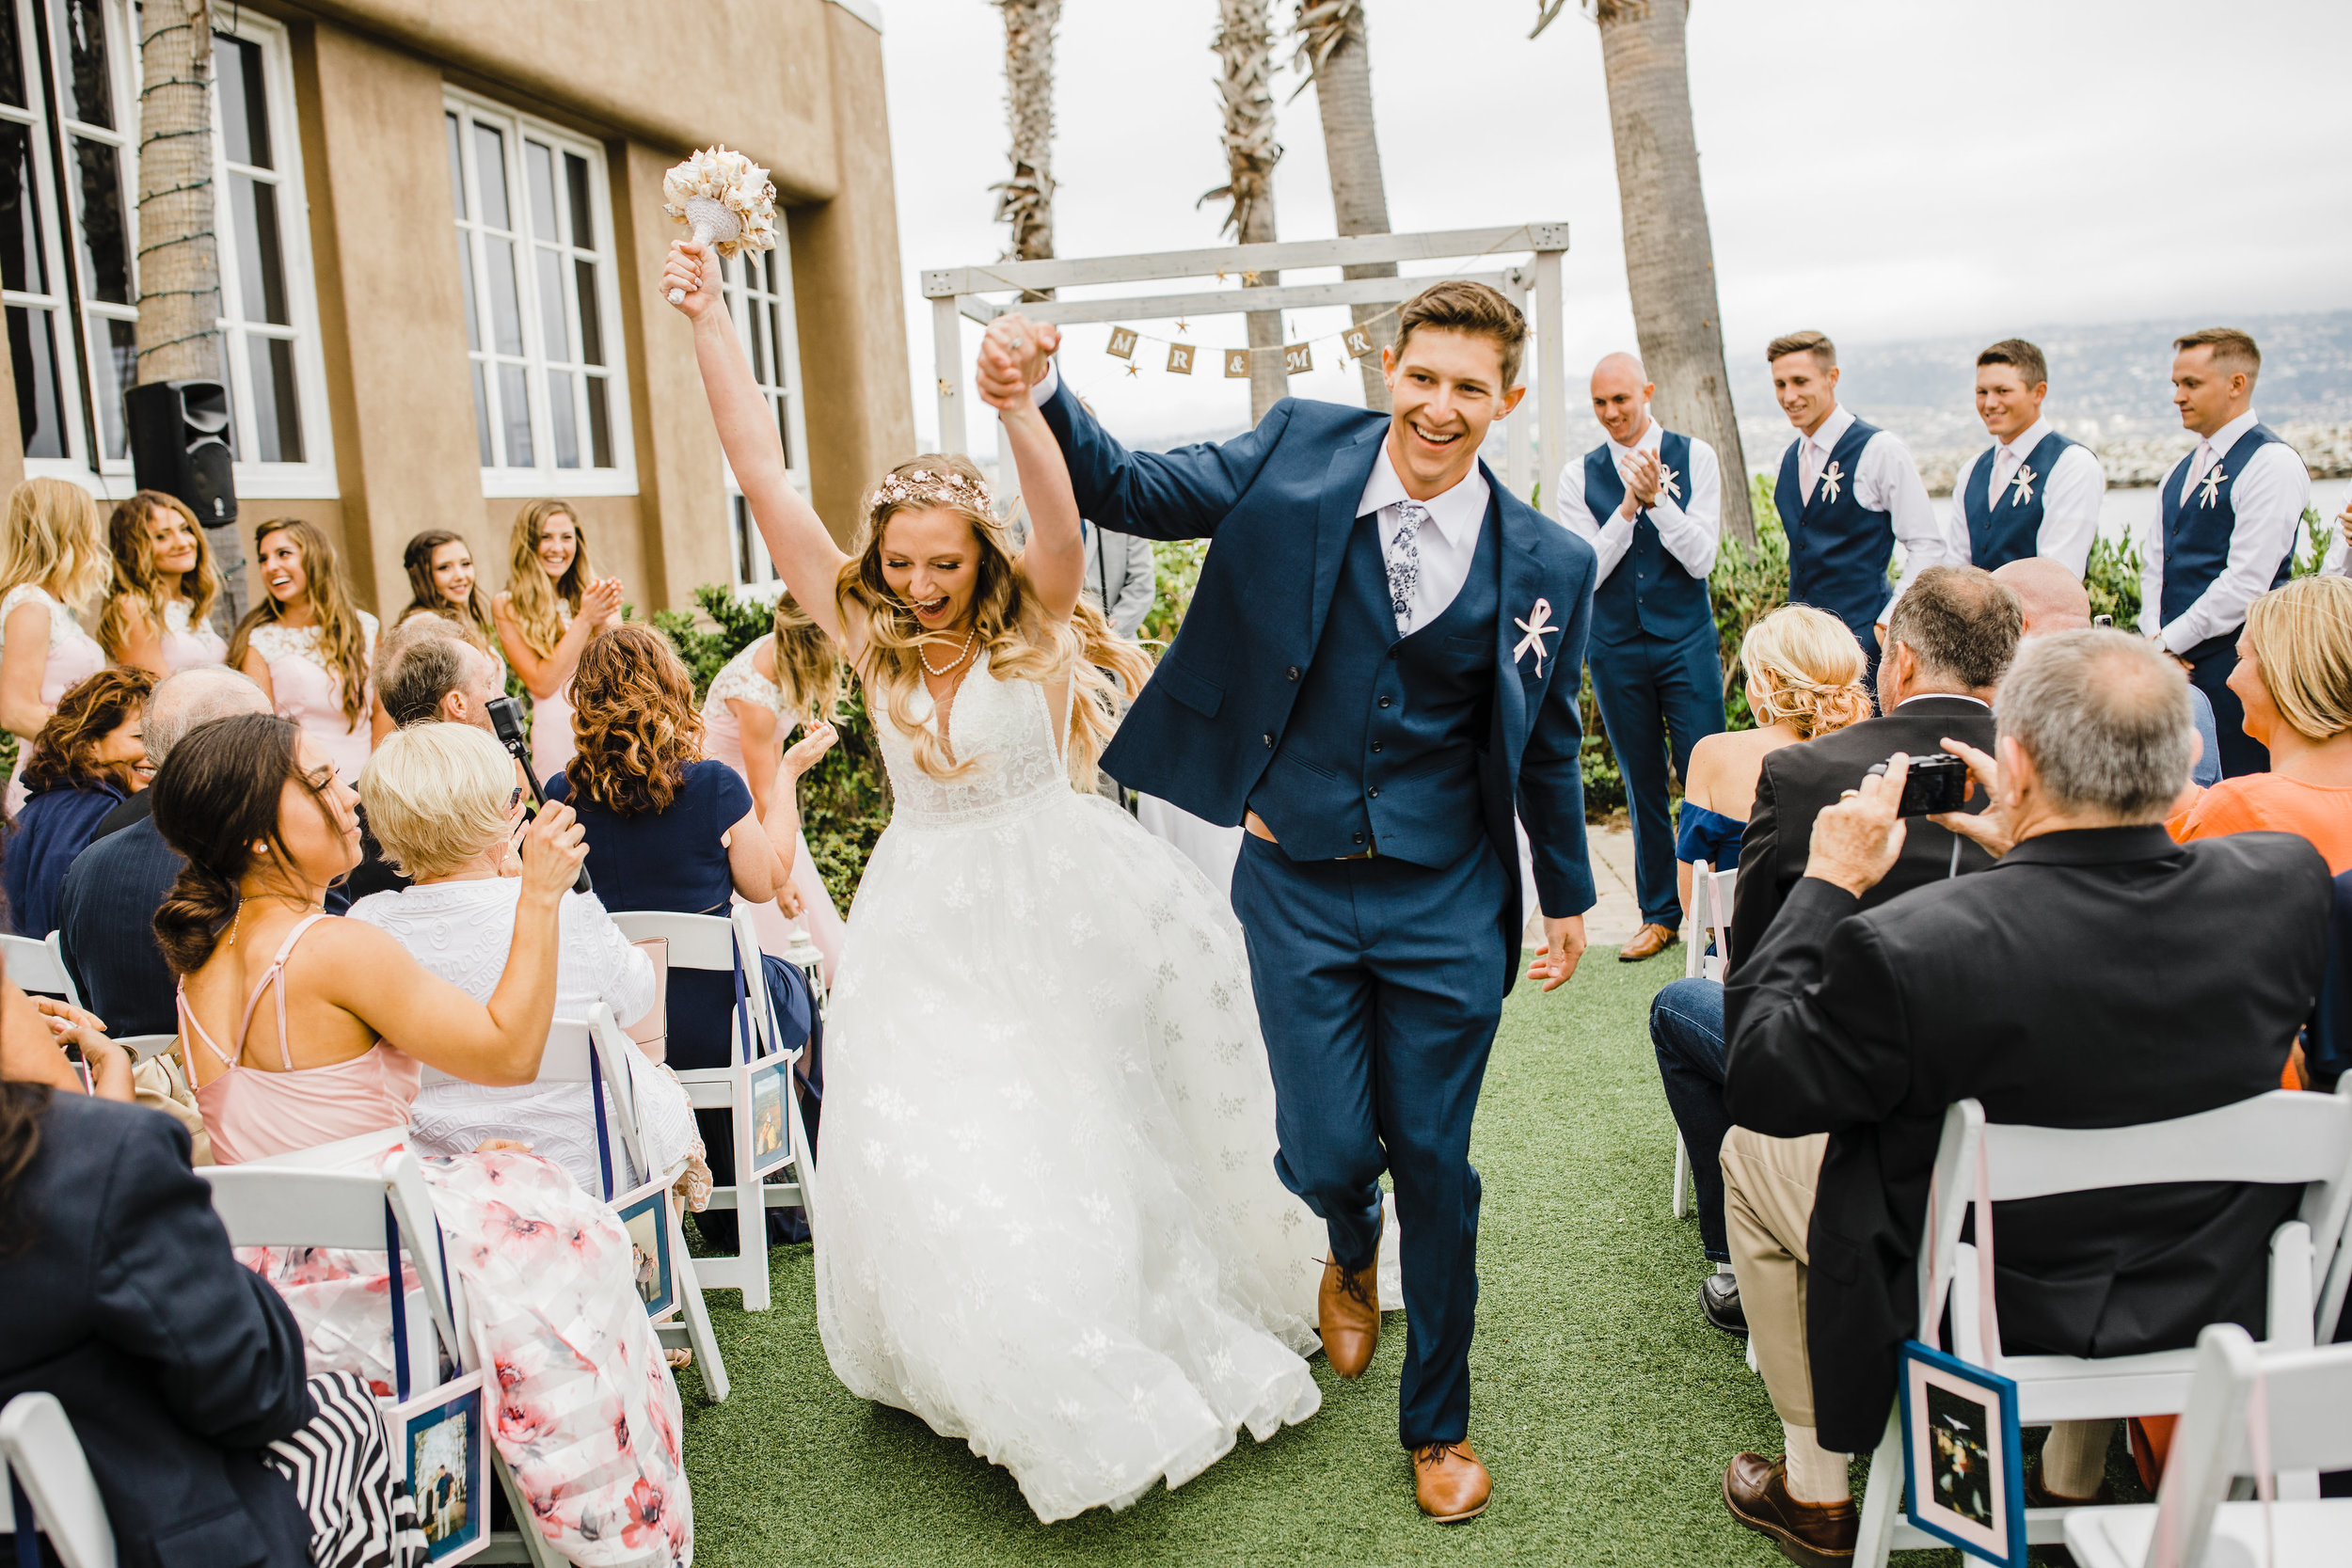 best wedding photographer in provo utah utah valley wedding photographer outdoor wedding wedding exit holding hands wedding arch beachfront wedding palm trees